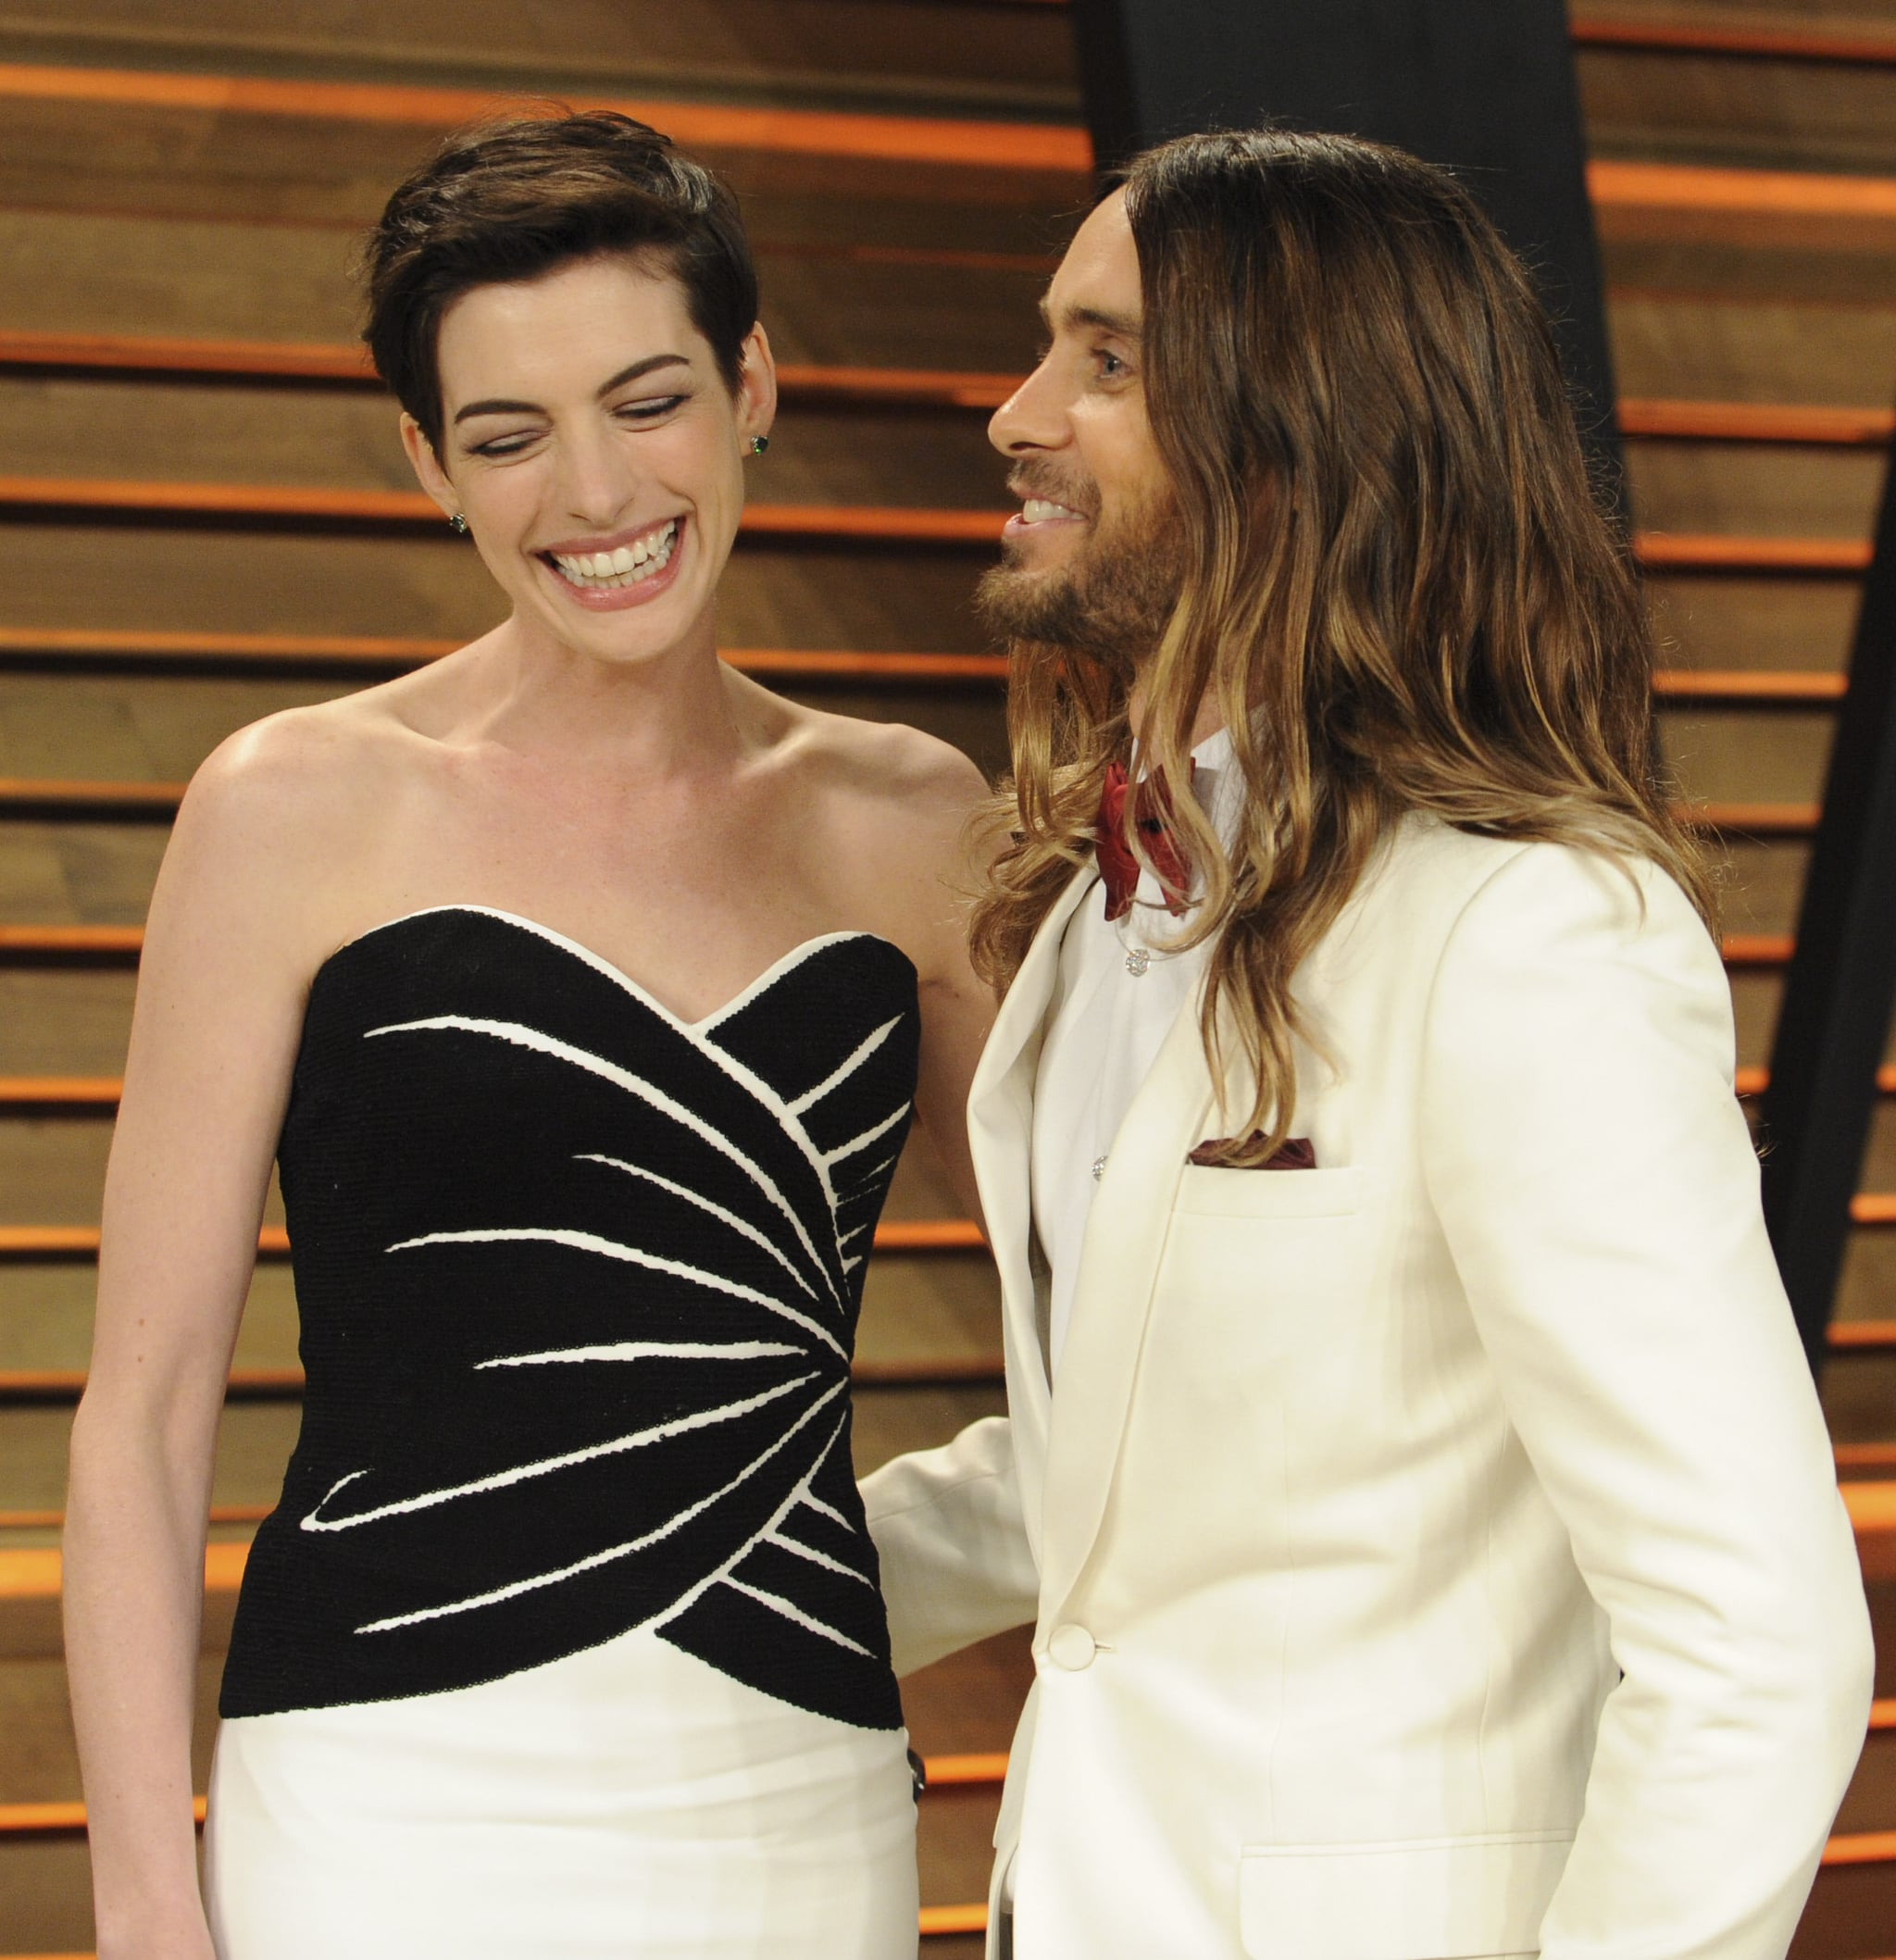 Jared gave Anne Hathaway the giggles after photobombing her at the Vanity Fair Oscars afterparty.